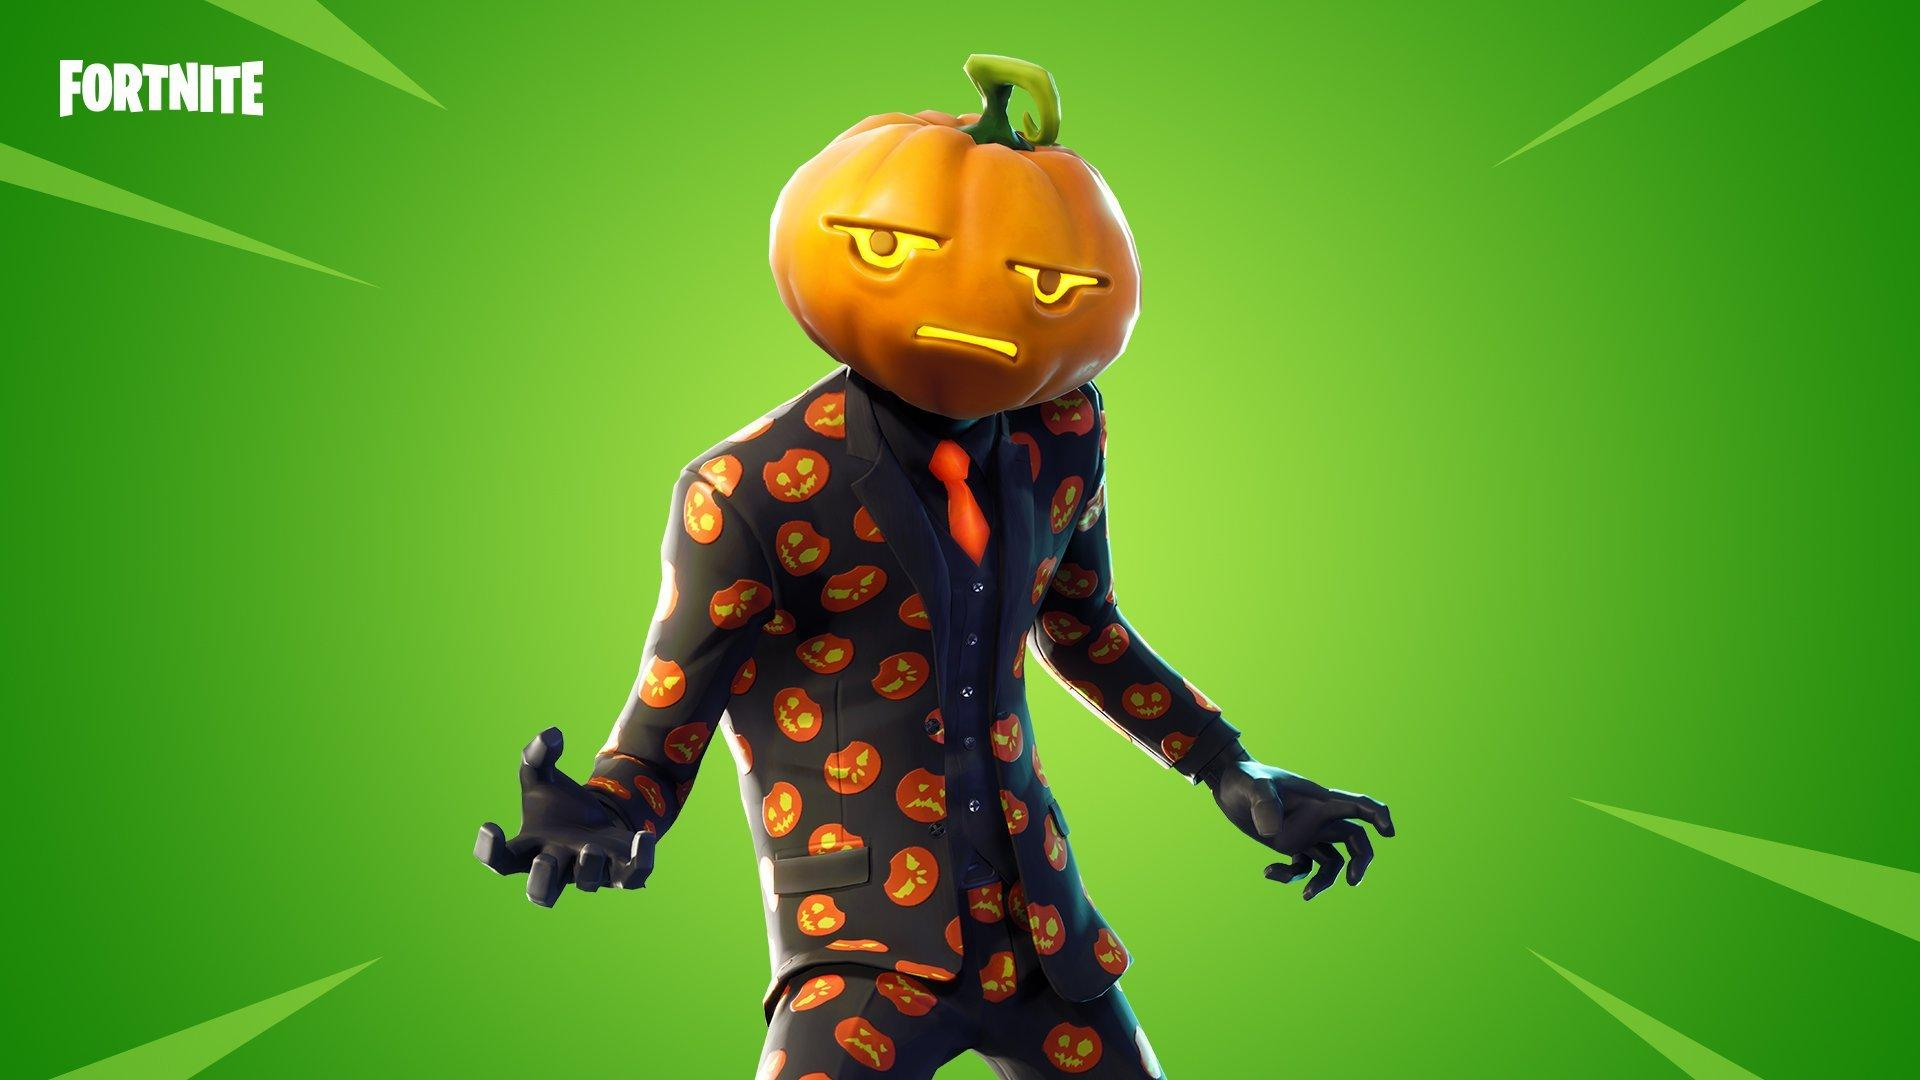 Official Wallpaper Of Jack Gourdon From Fortnite Game | PaperPull